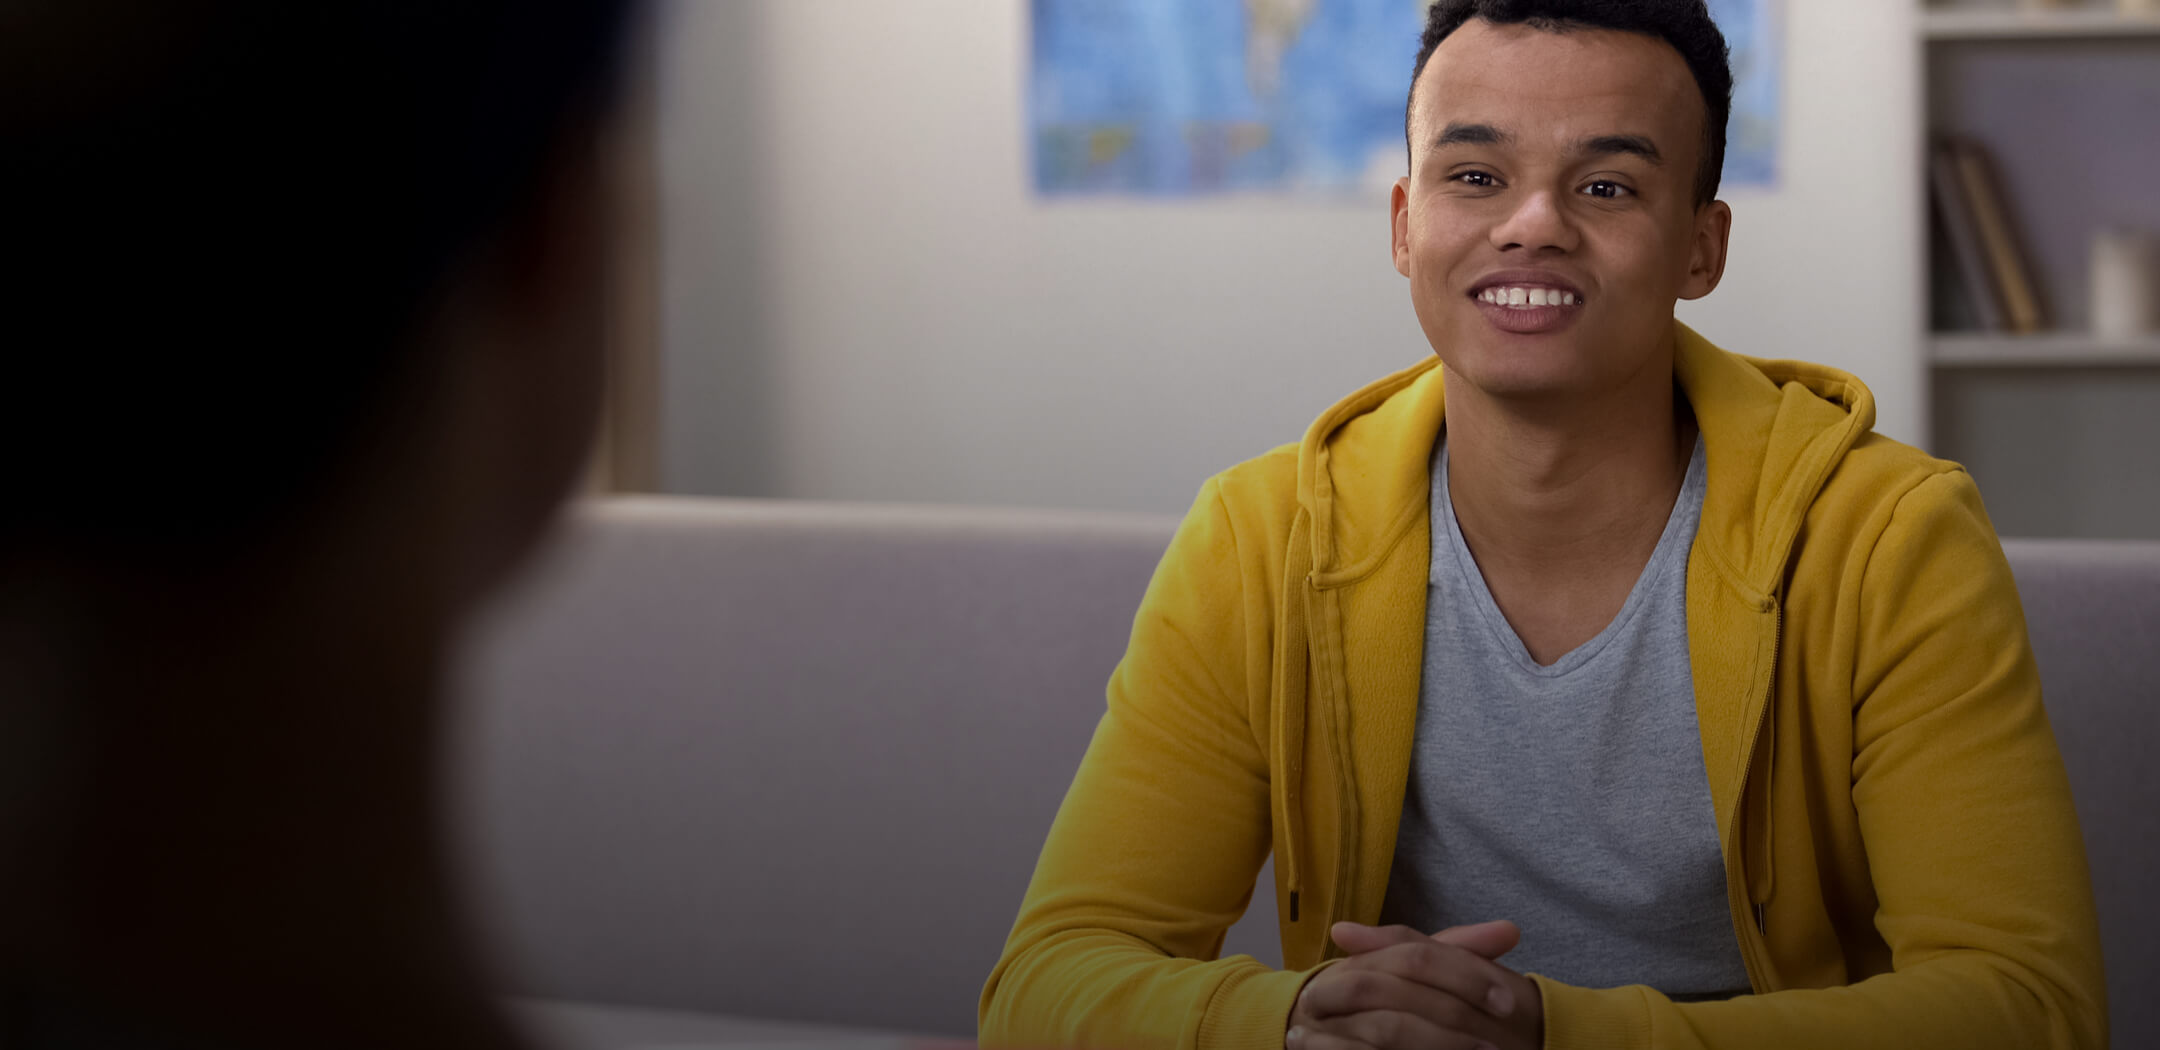 A bi-racial youth in a yellow hoodie smiling and seated in front of a therapist